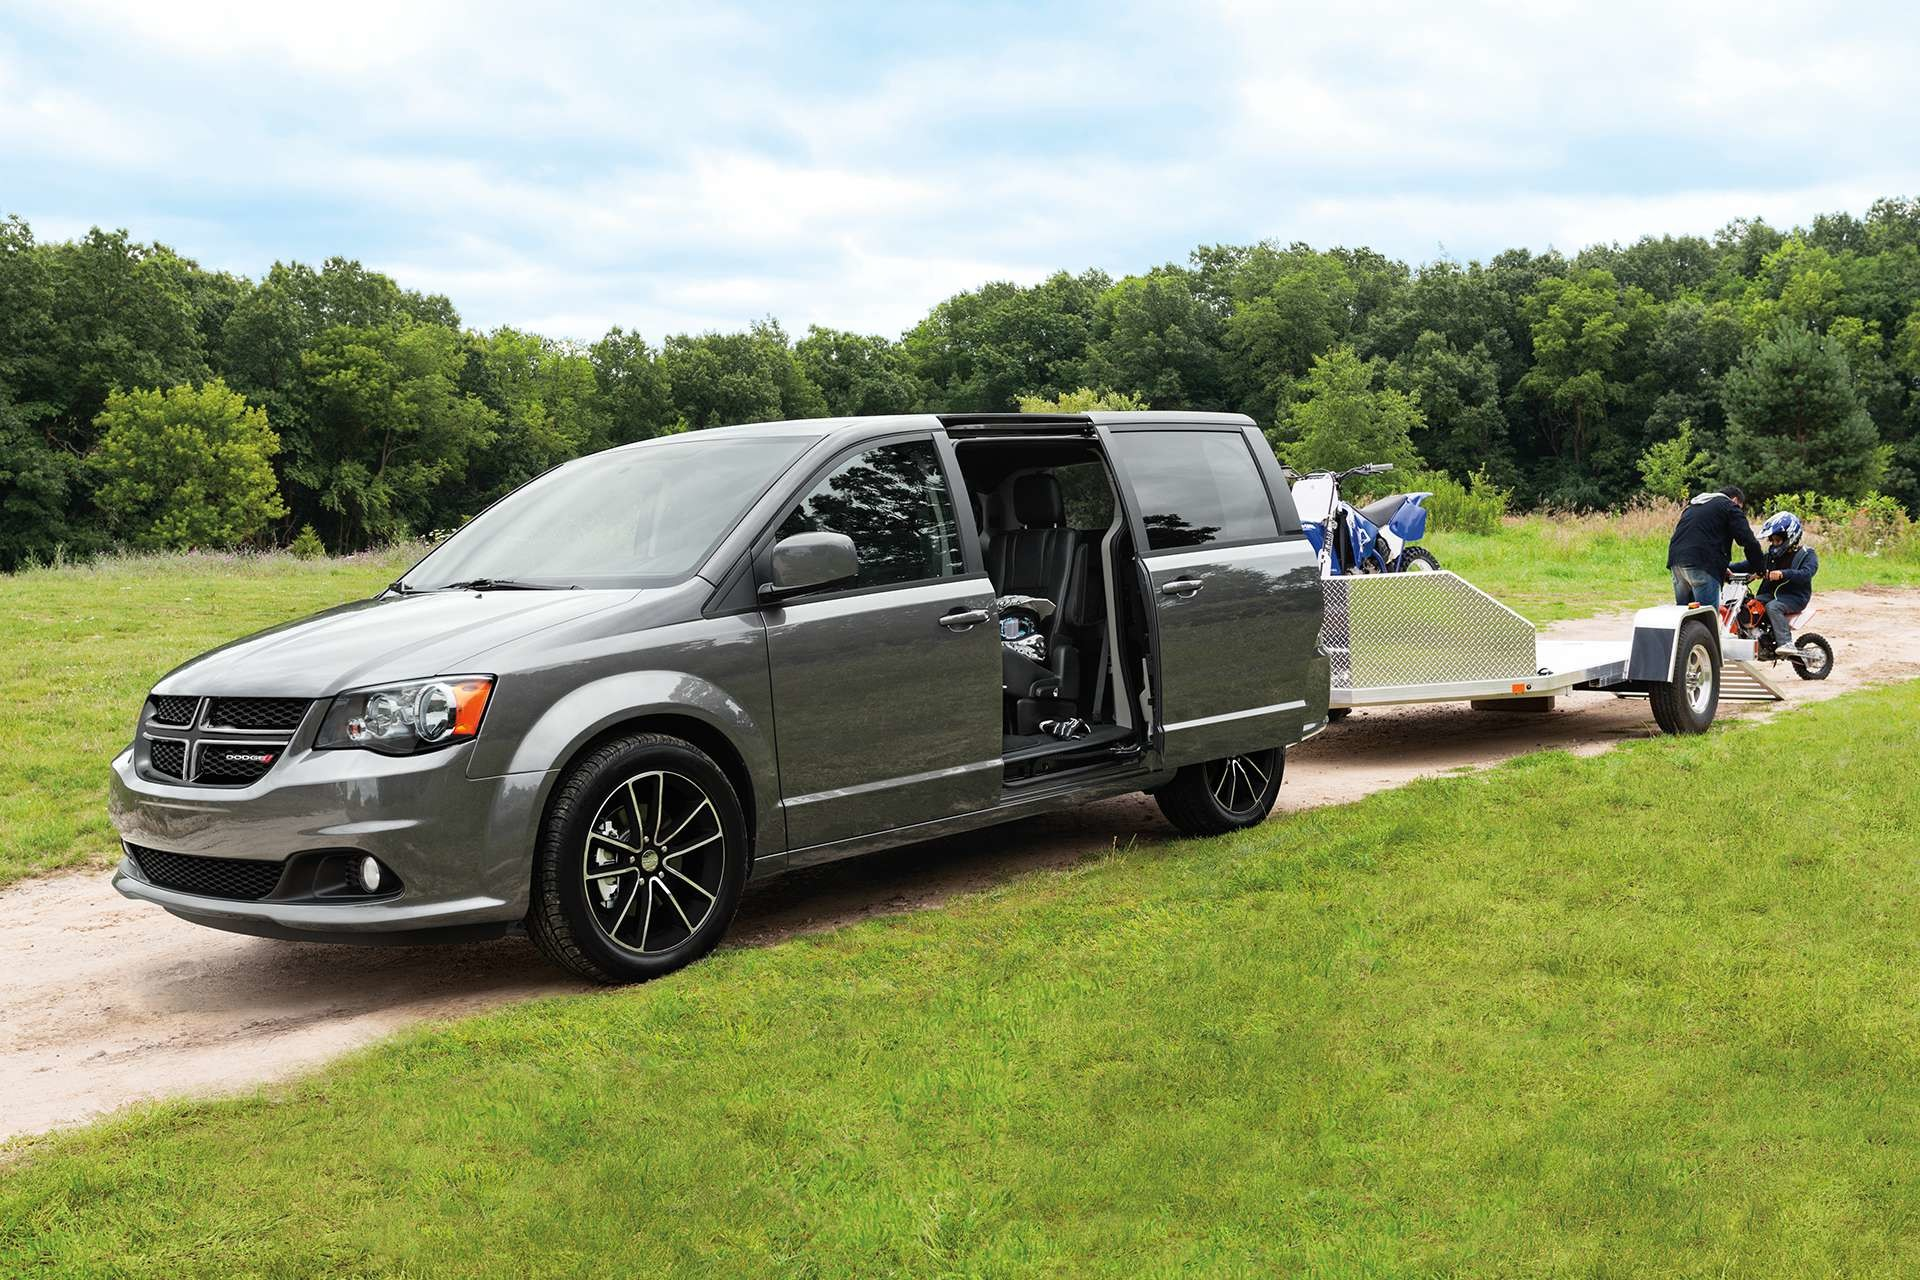 2019 Dodge Grand Caravan exterior view in grey towing a trailer